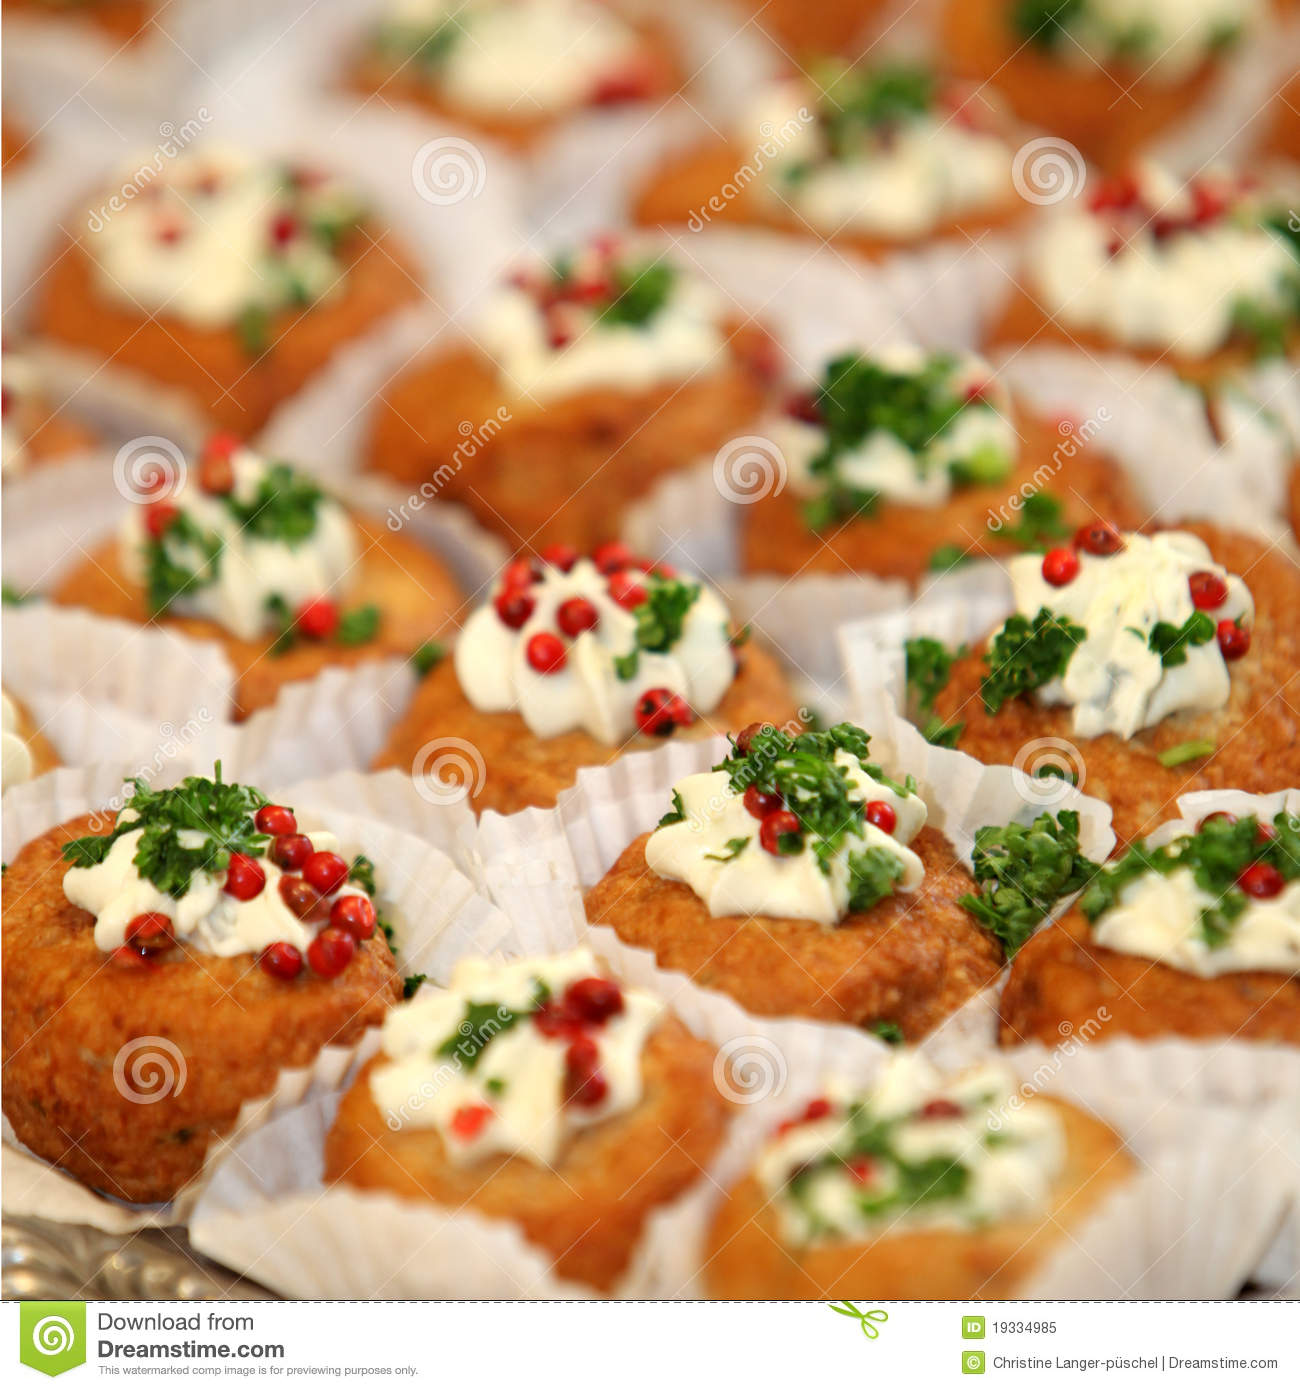 Finger Food Or Tapas Royalty Free Stock Photo - Image: 19334985